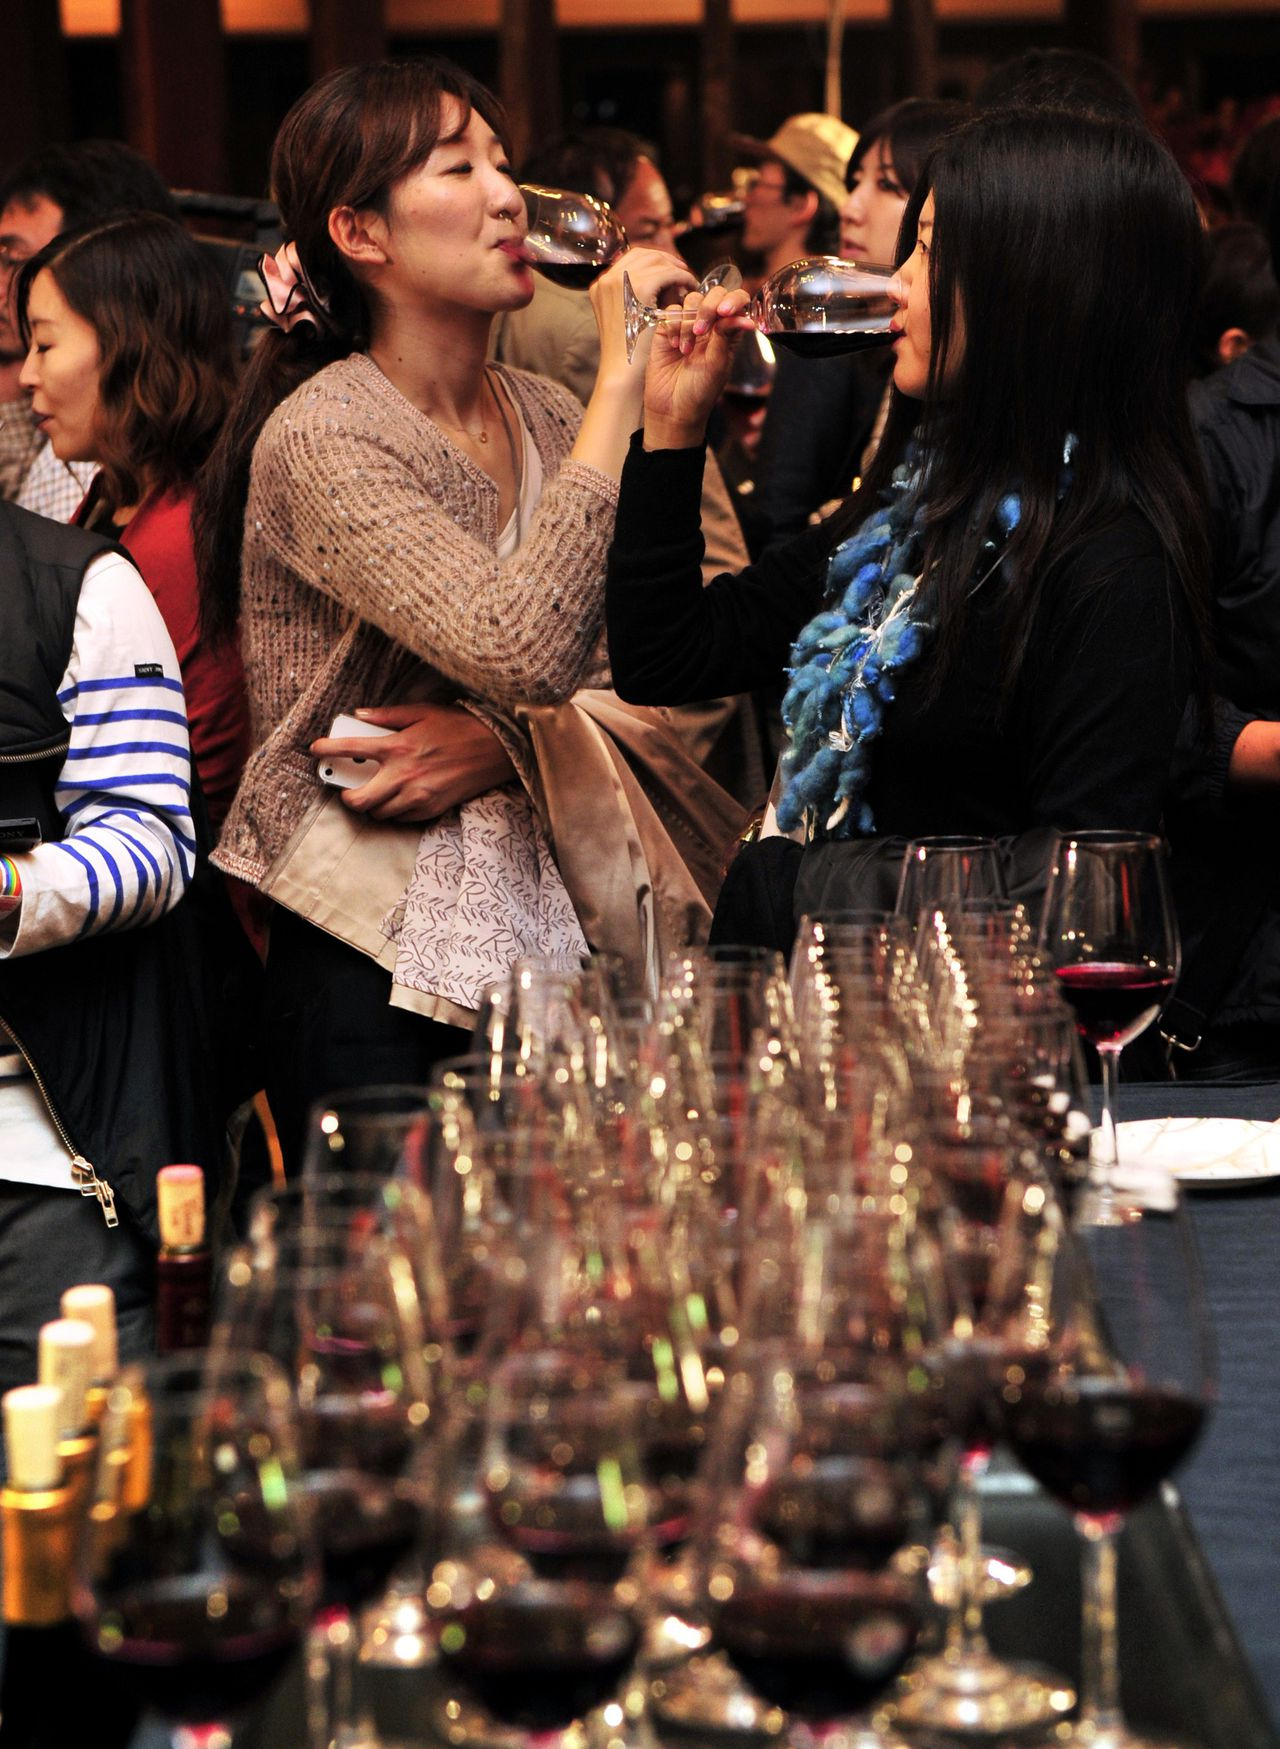 Japanese people enjoy the 2011 vintage Beaujolais Nouveau wine in Tokyo on November 17, 2011 after the embargo on the wine was removed at midnight. A total of six million bottles of Beaujolais Nouveau wine are expected to be imported to Japan this year. AFP PHOTO/Yoshikazu TSUNO